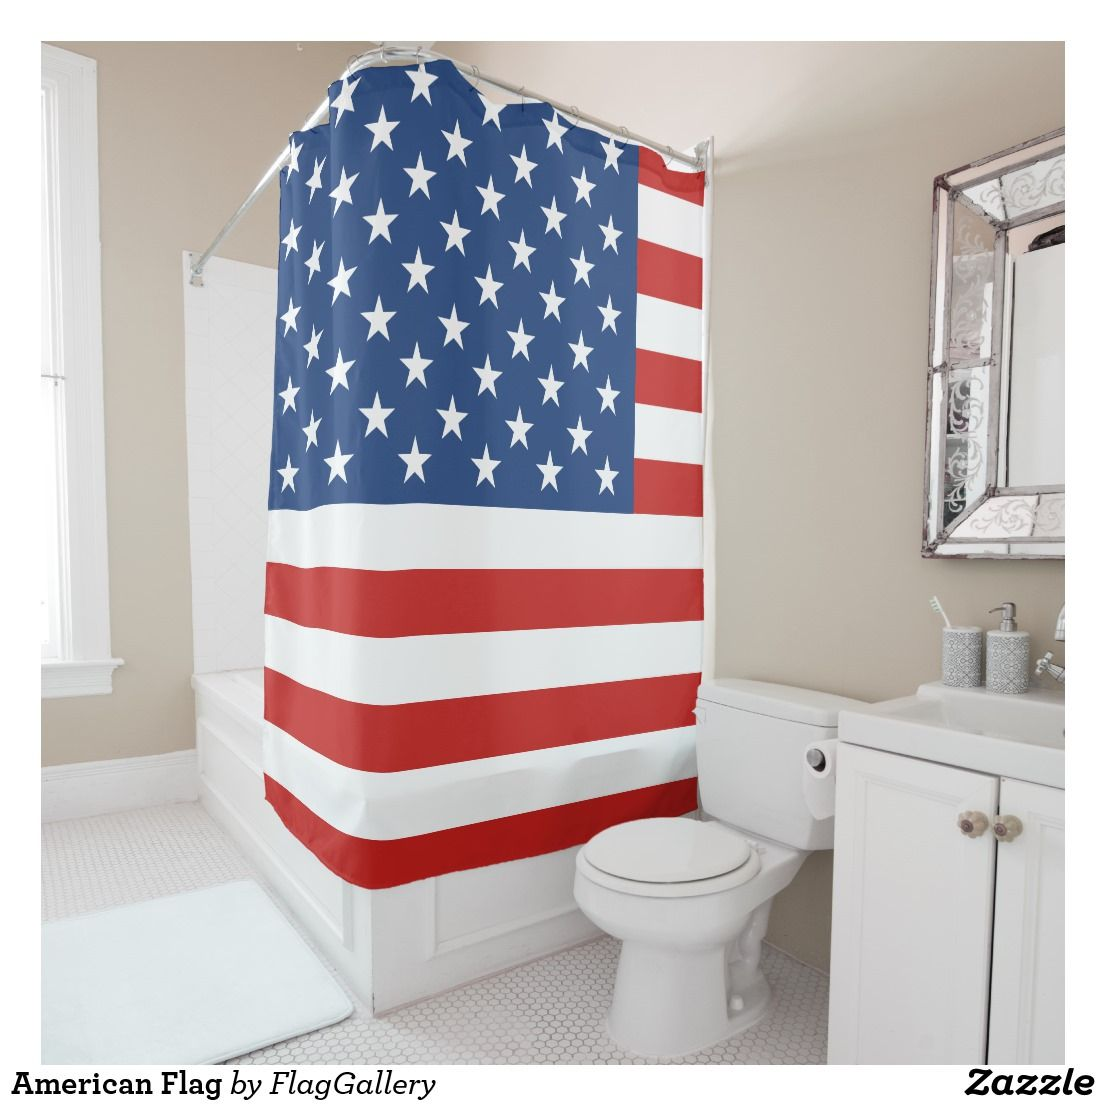 American Flag Shower Curtain Zazzle Com With Images Curtains